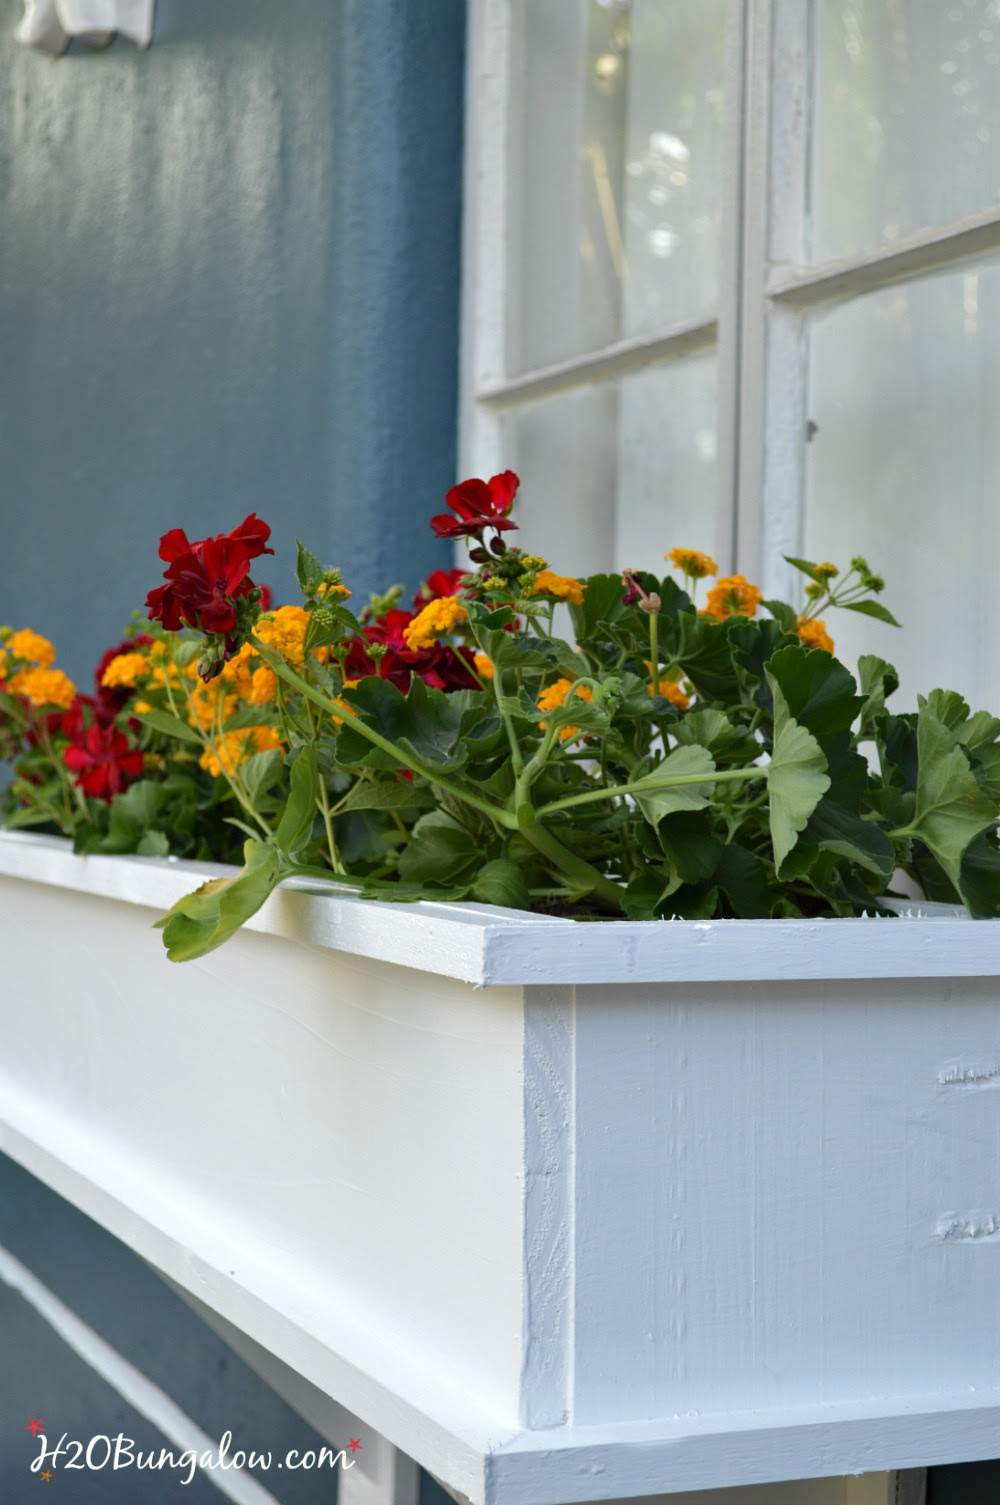 How to Build a Flower Box Planter Tutorial - H20Bungalow